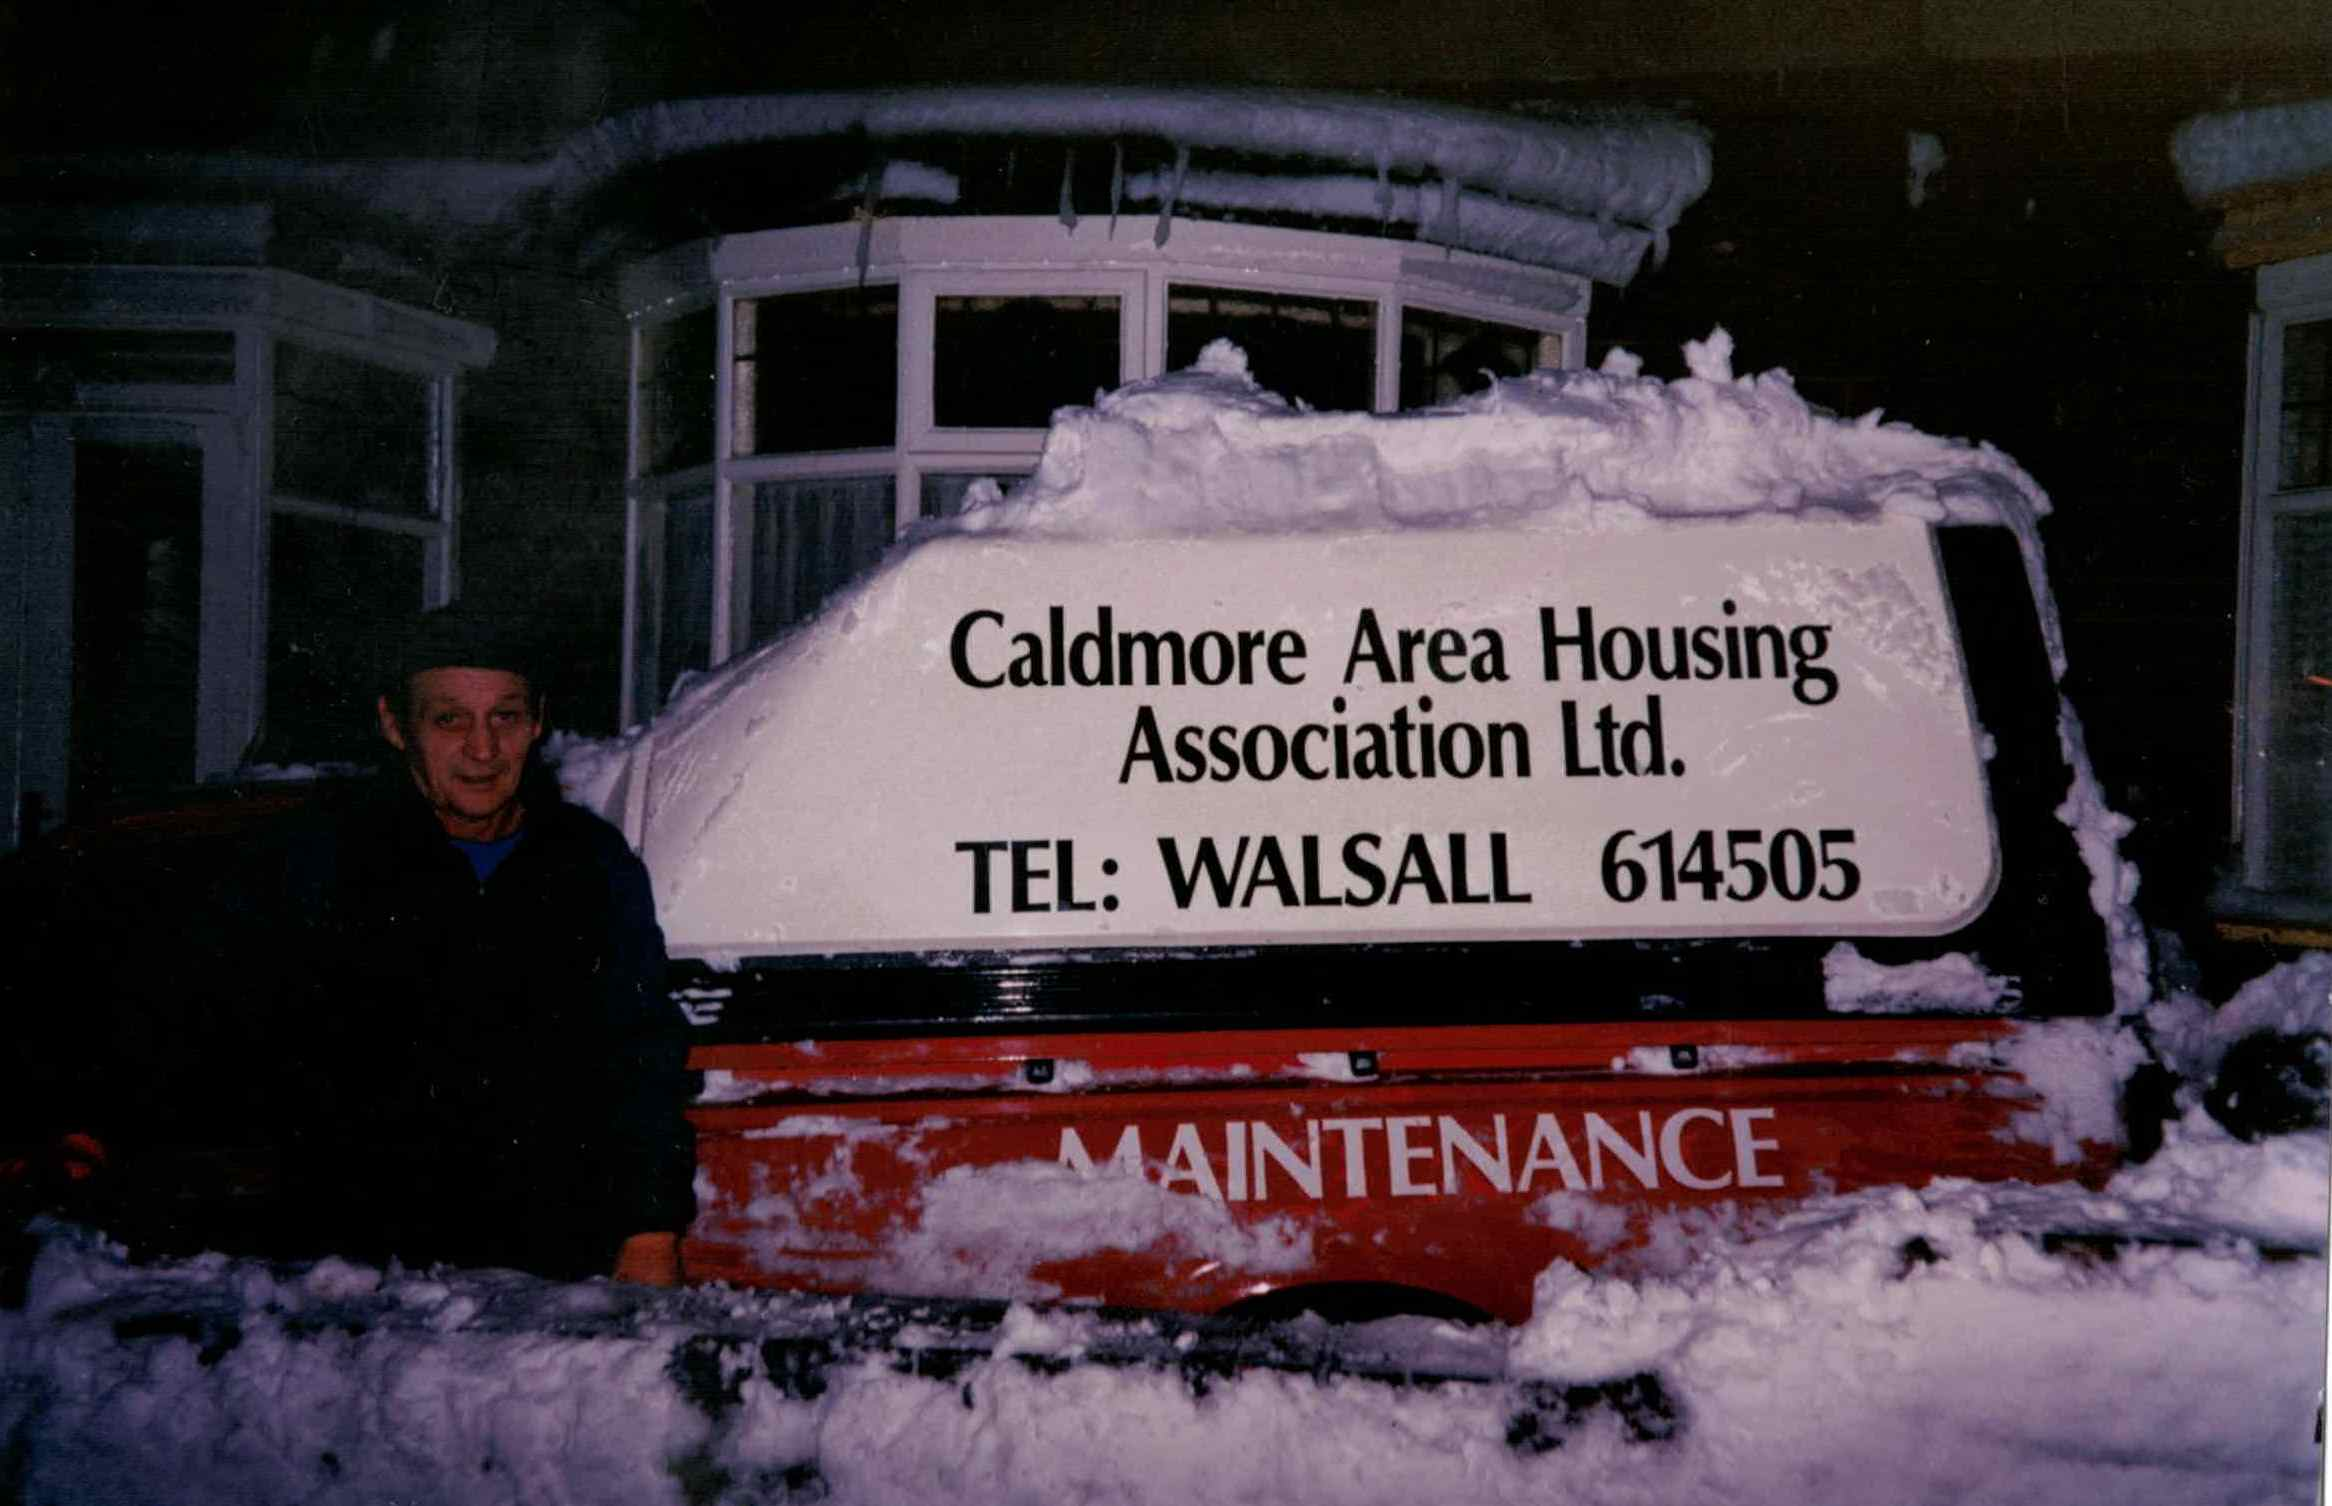 Caldmore Area Housing Association